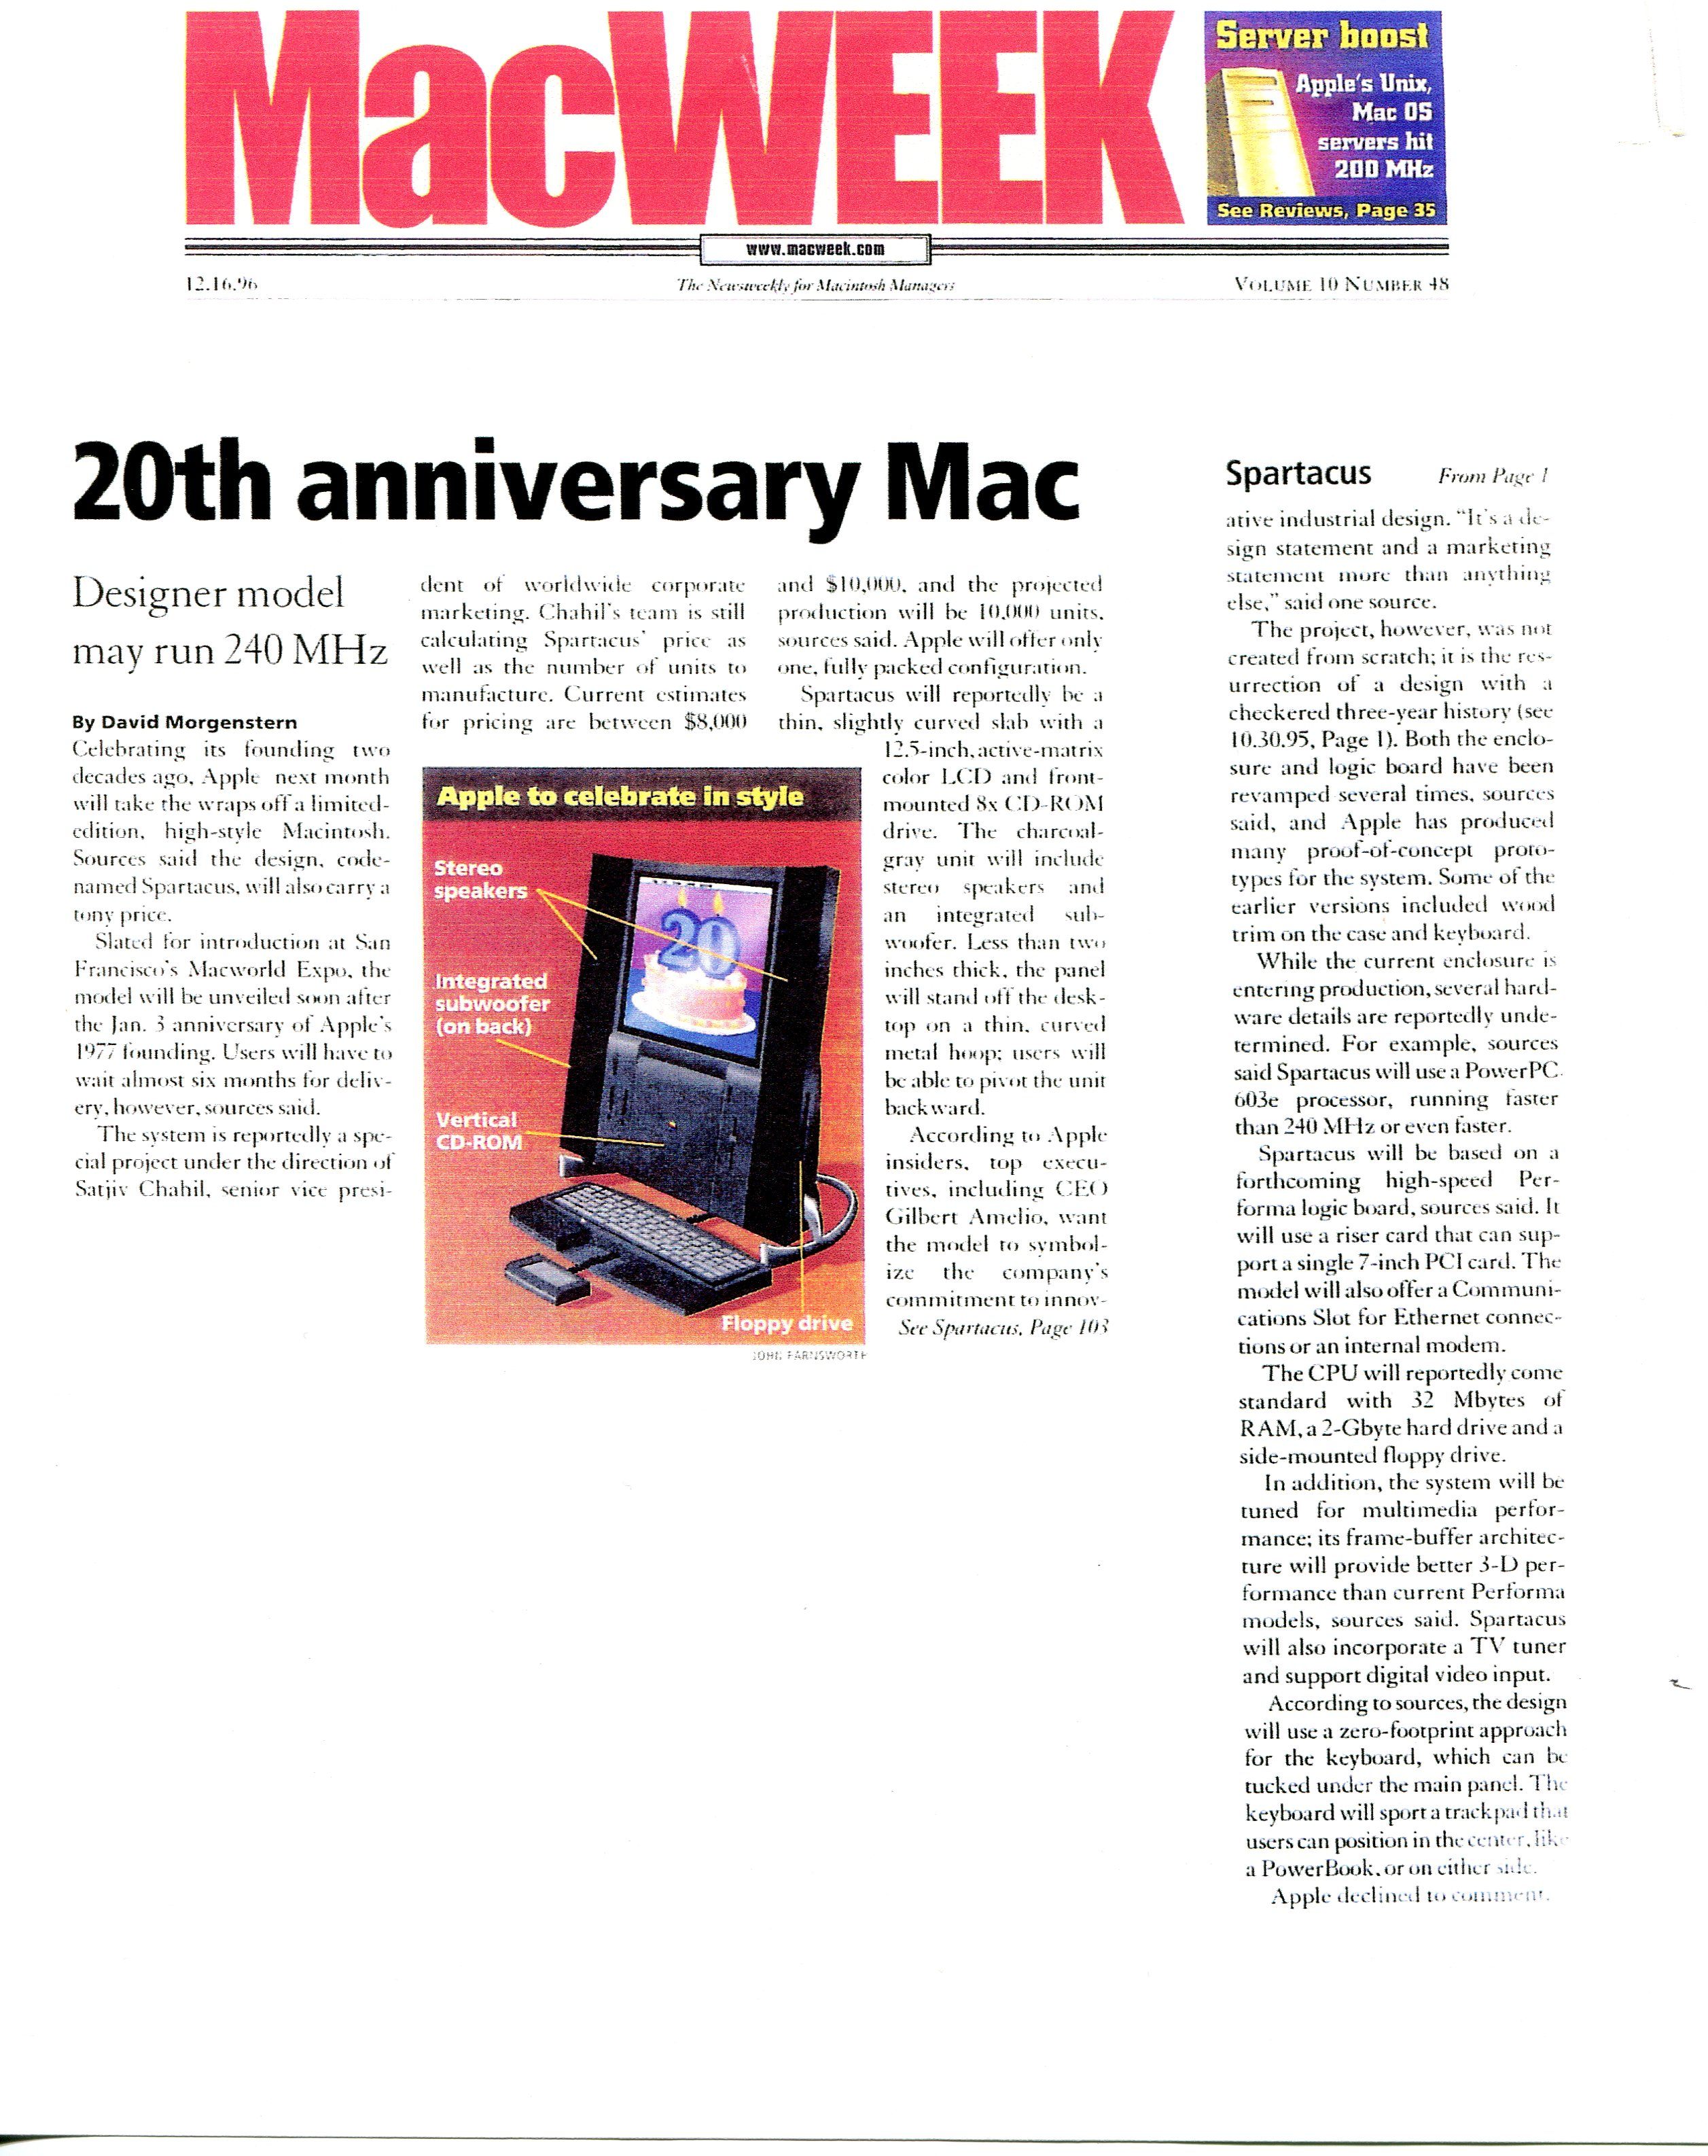 (1996) MacWeek _20th anniversary_